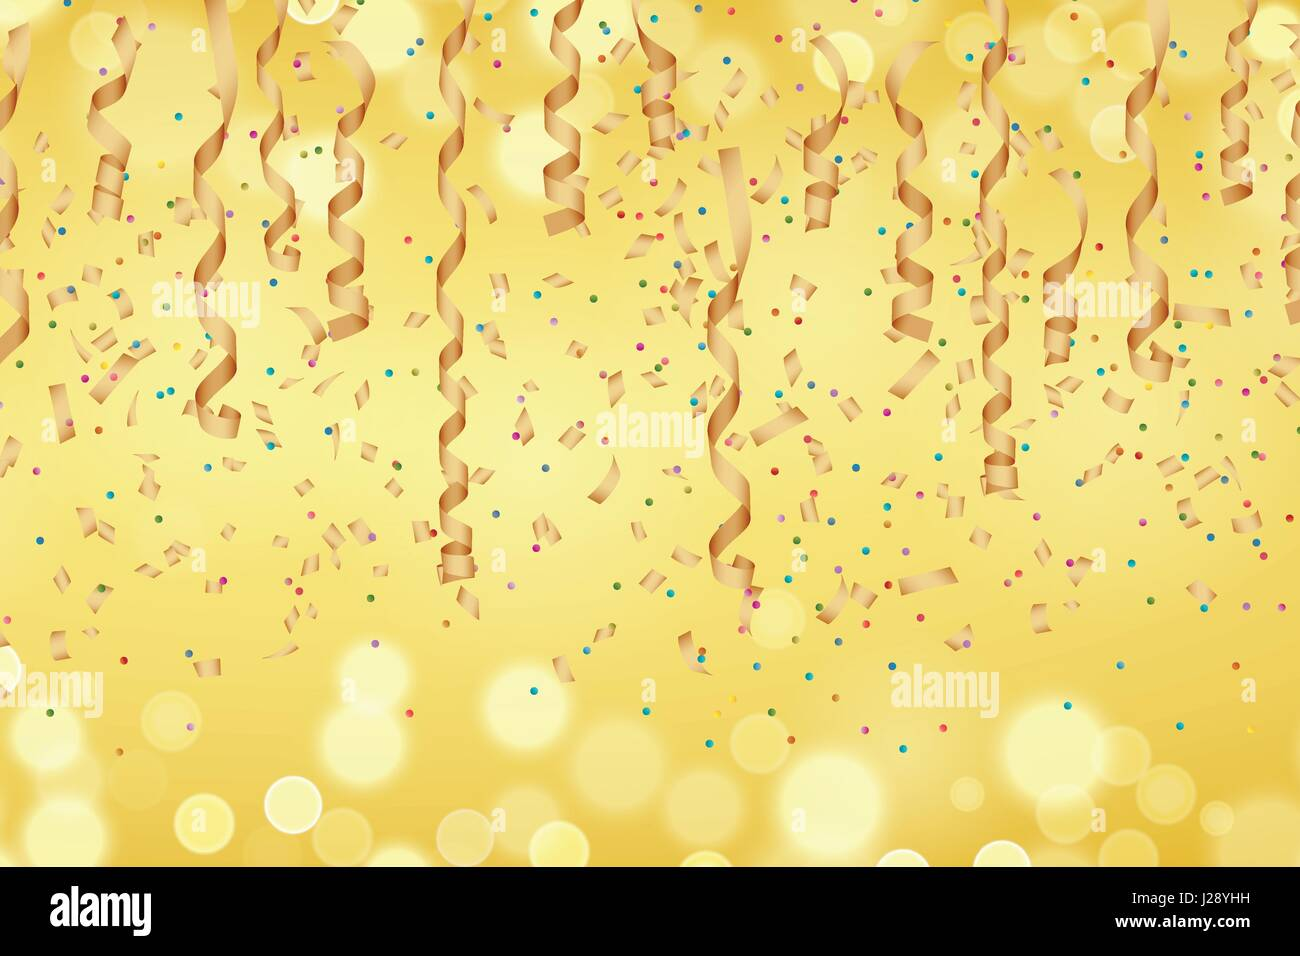 curly golden paper ribbon and confetti on blurred golden background vector illustration perfect for new year or birthday card